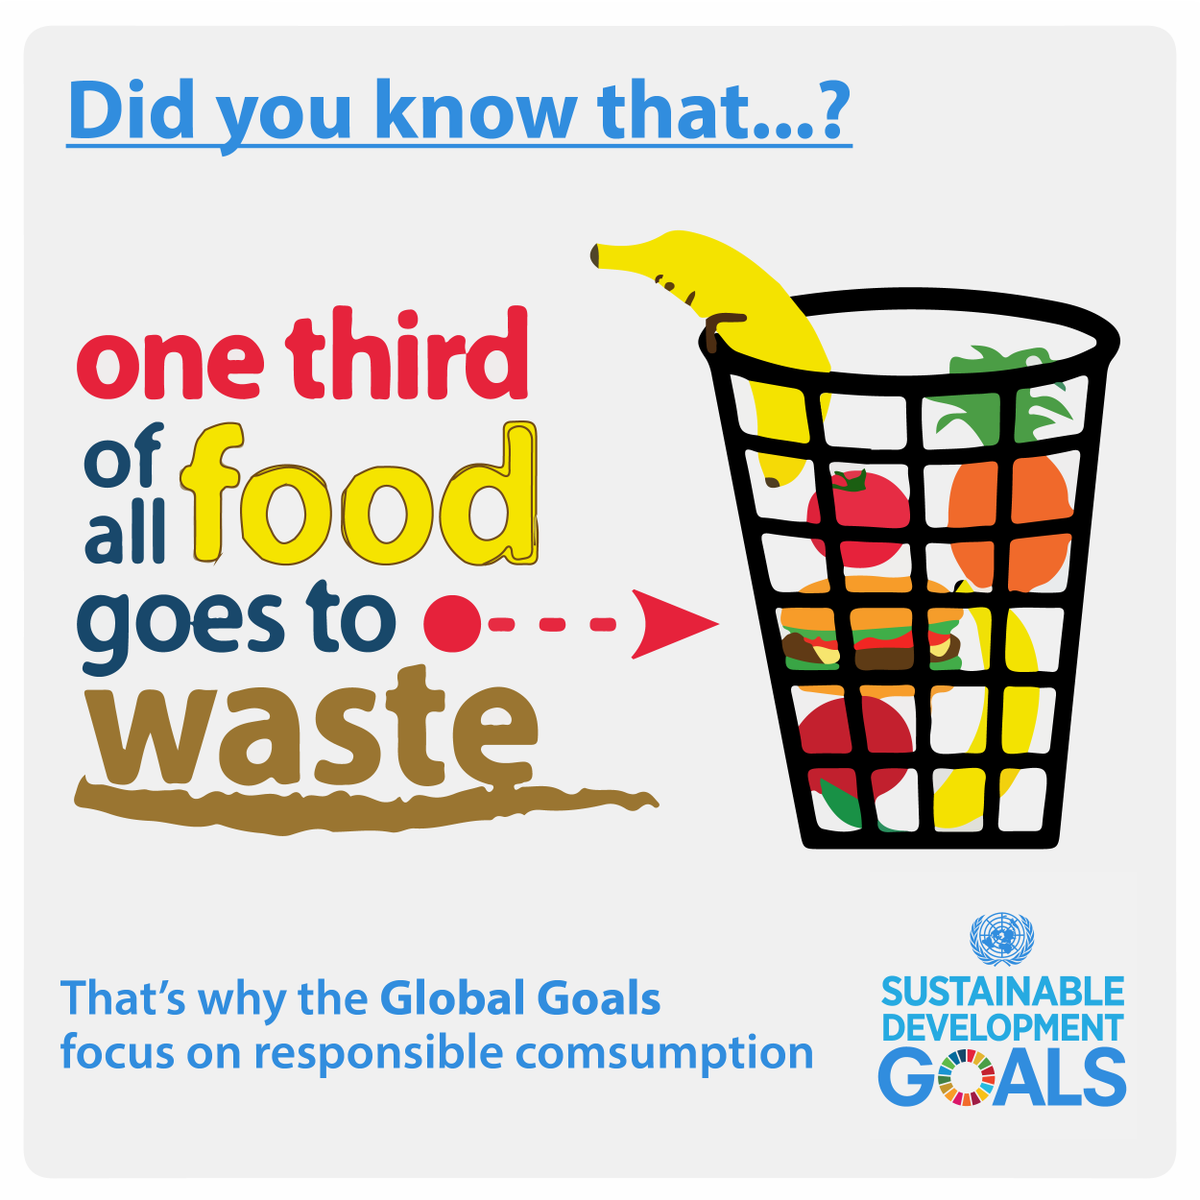 On Monday's Sustainable Gastronomy Day, here are tips from @FAOnews on how to reduce food washttps://t.co/Ewfm28Z5s2t#GlobalGoalse: